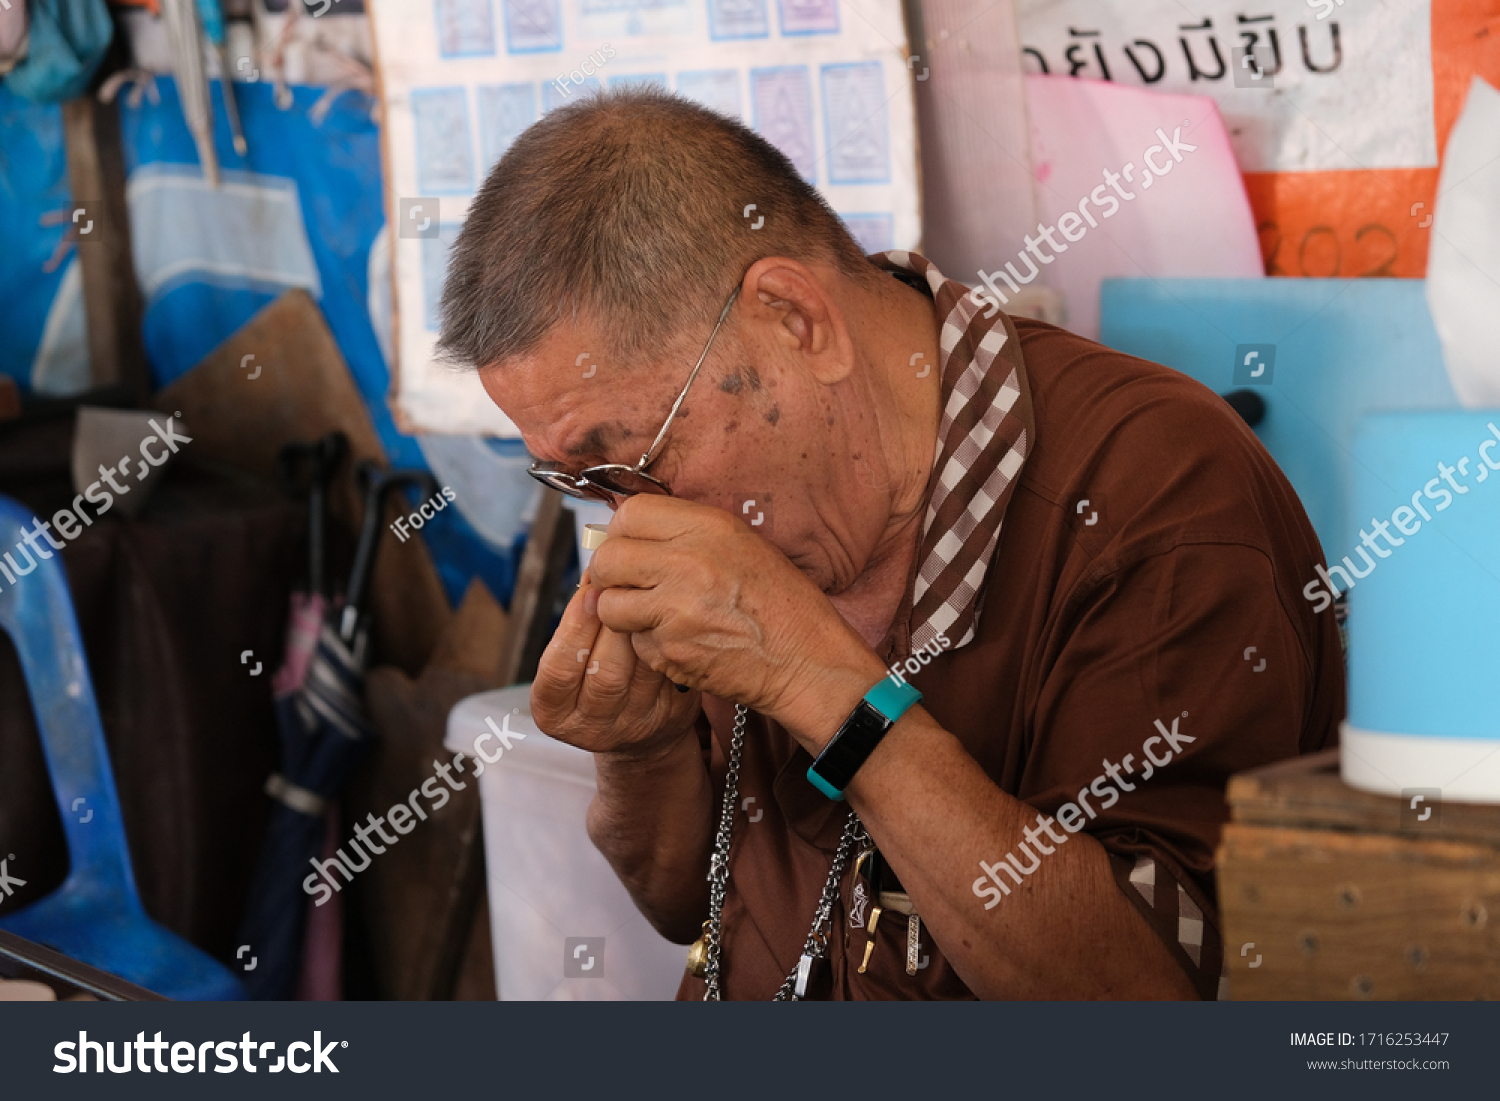 BANGKOK, THAILAND - FEBRUARY 15, 2020: An unidentified man uses a magnifier to look at an amulet on February 15, 2020, in Bangkok, Thailand.